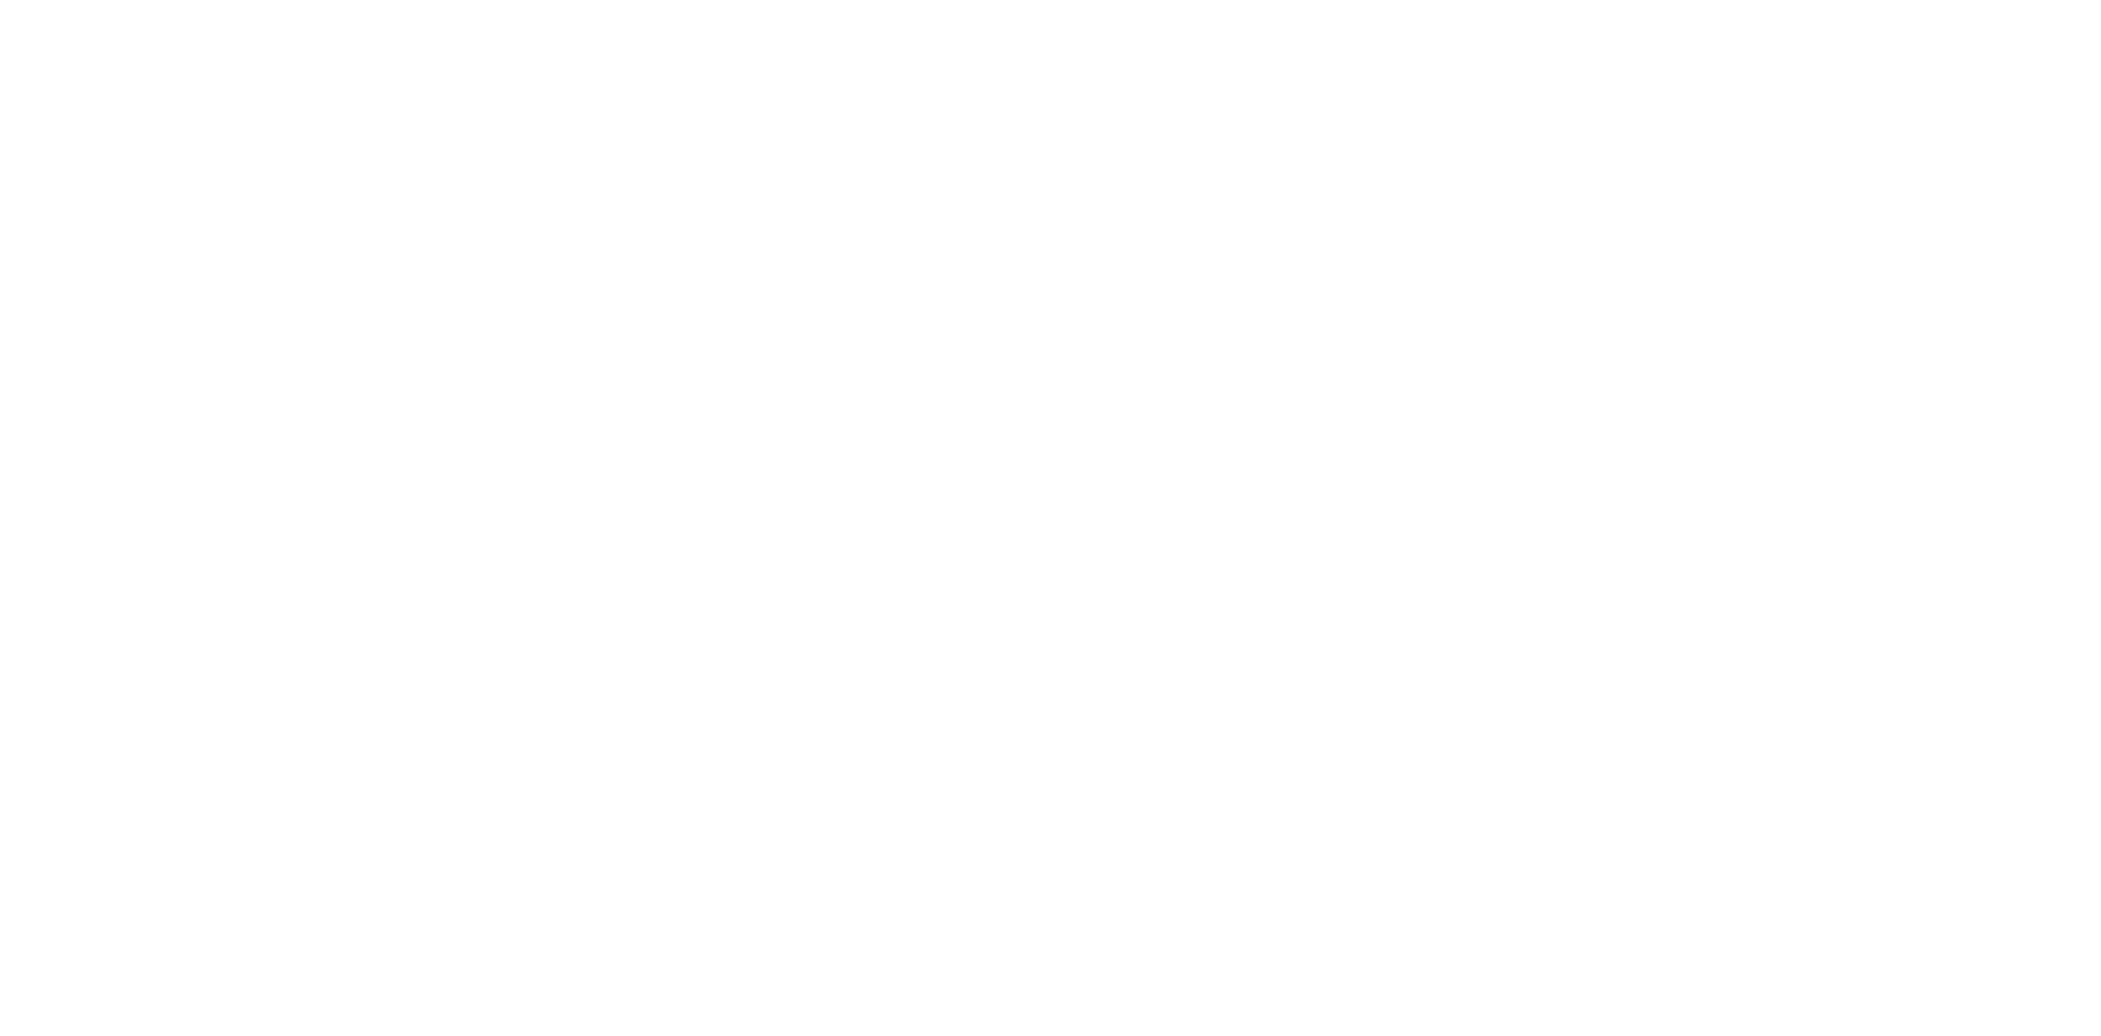 New Hampshire Chapter